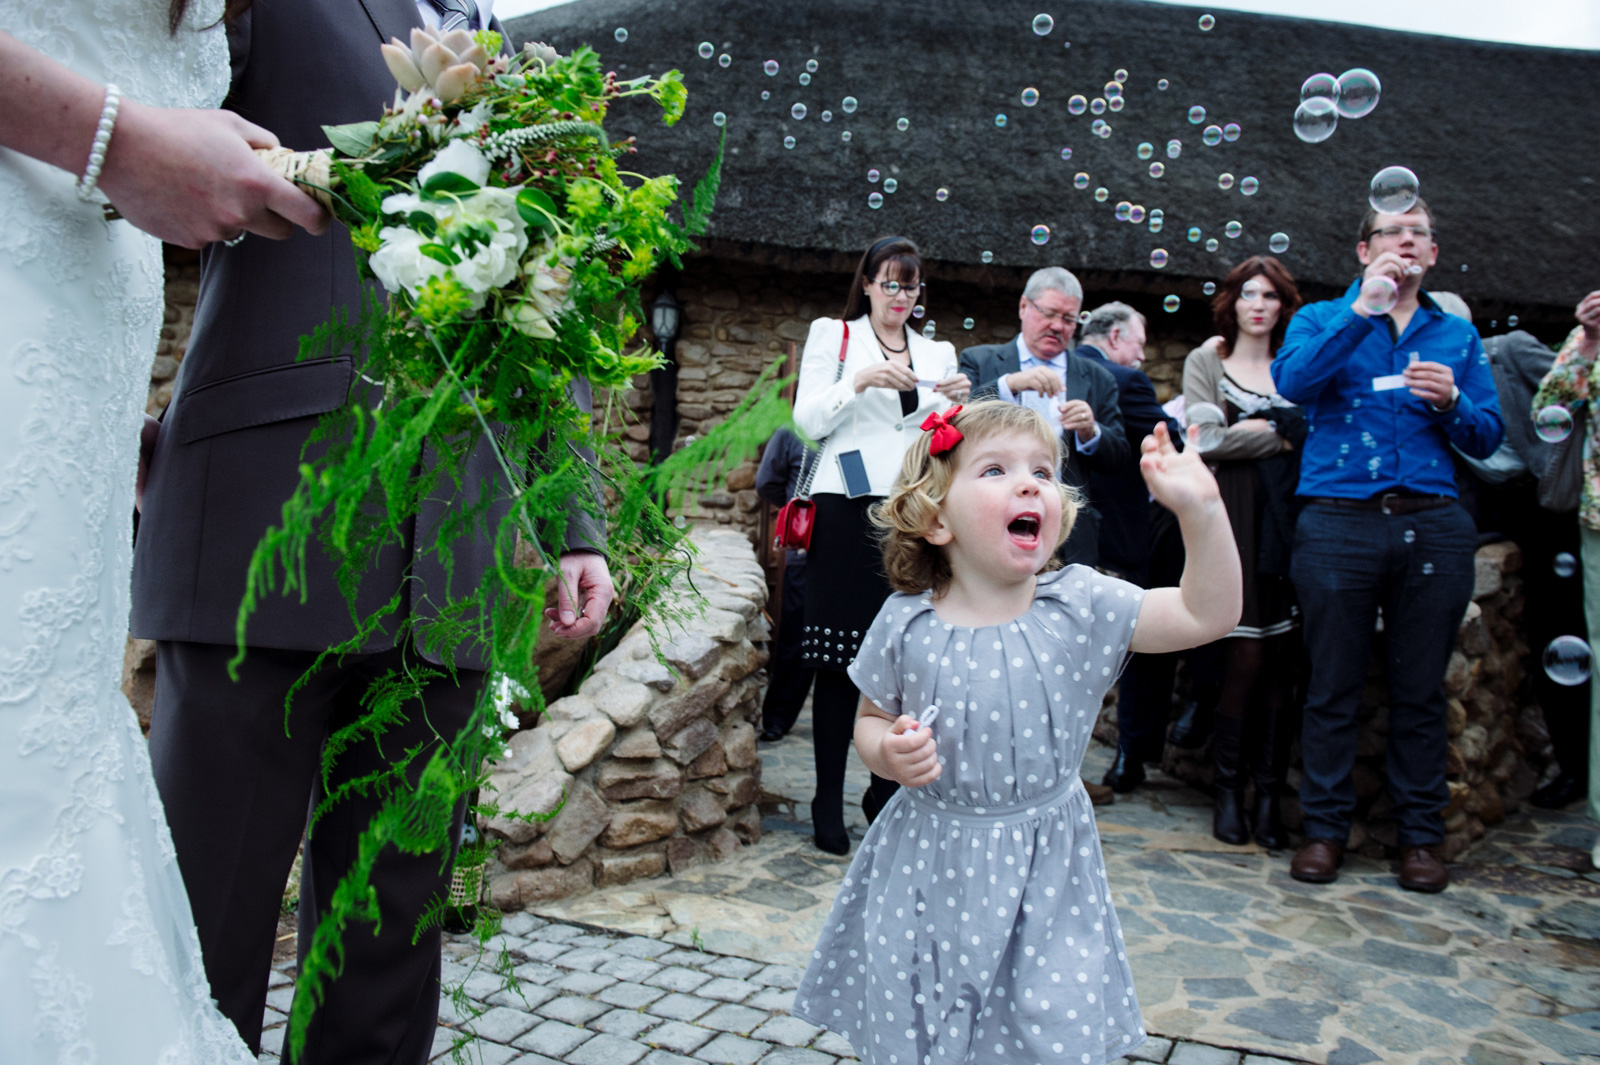 girl blowing bubbles at wedding